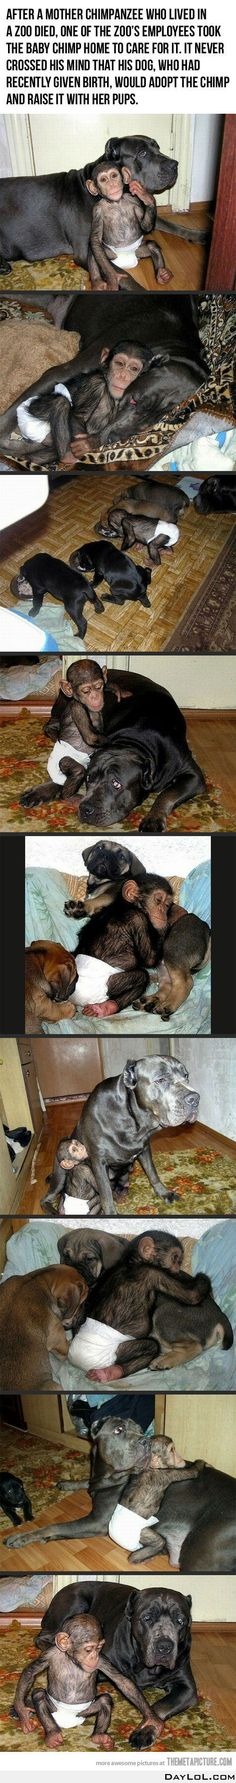 Baby monkey adopted by a dog -i want a monkey!!!